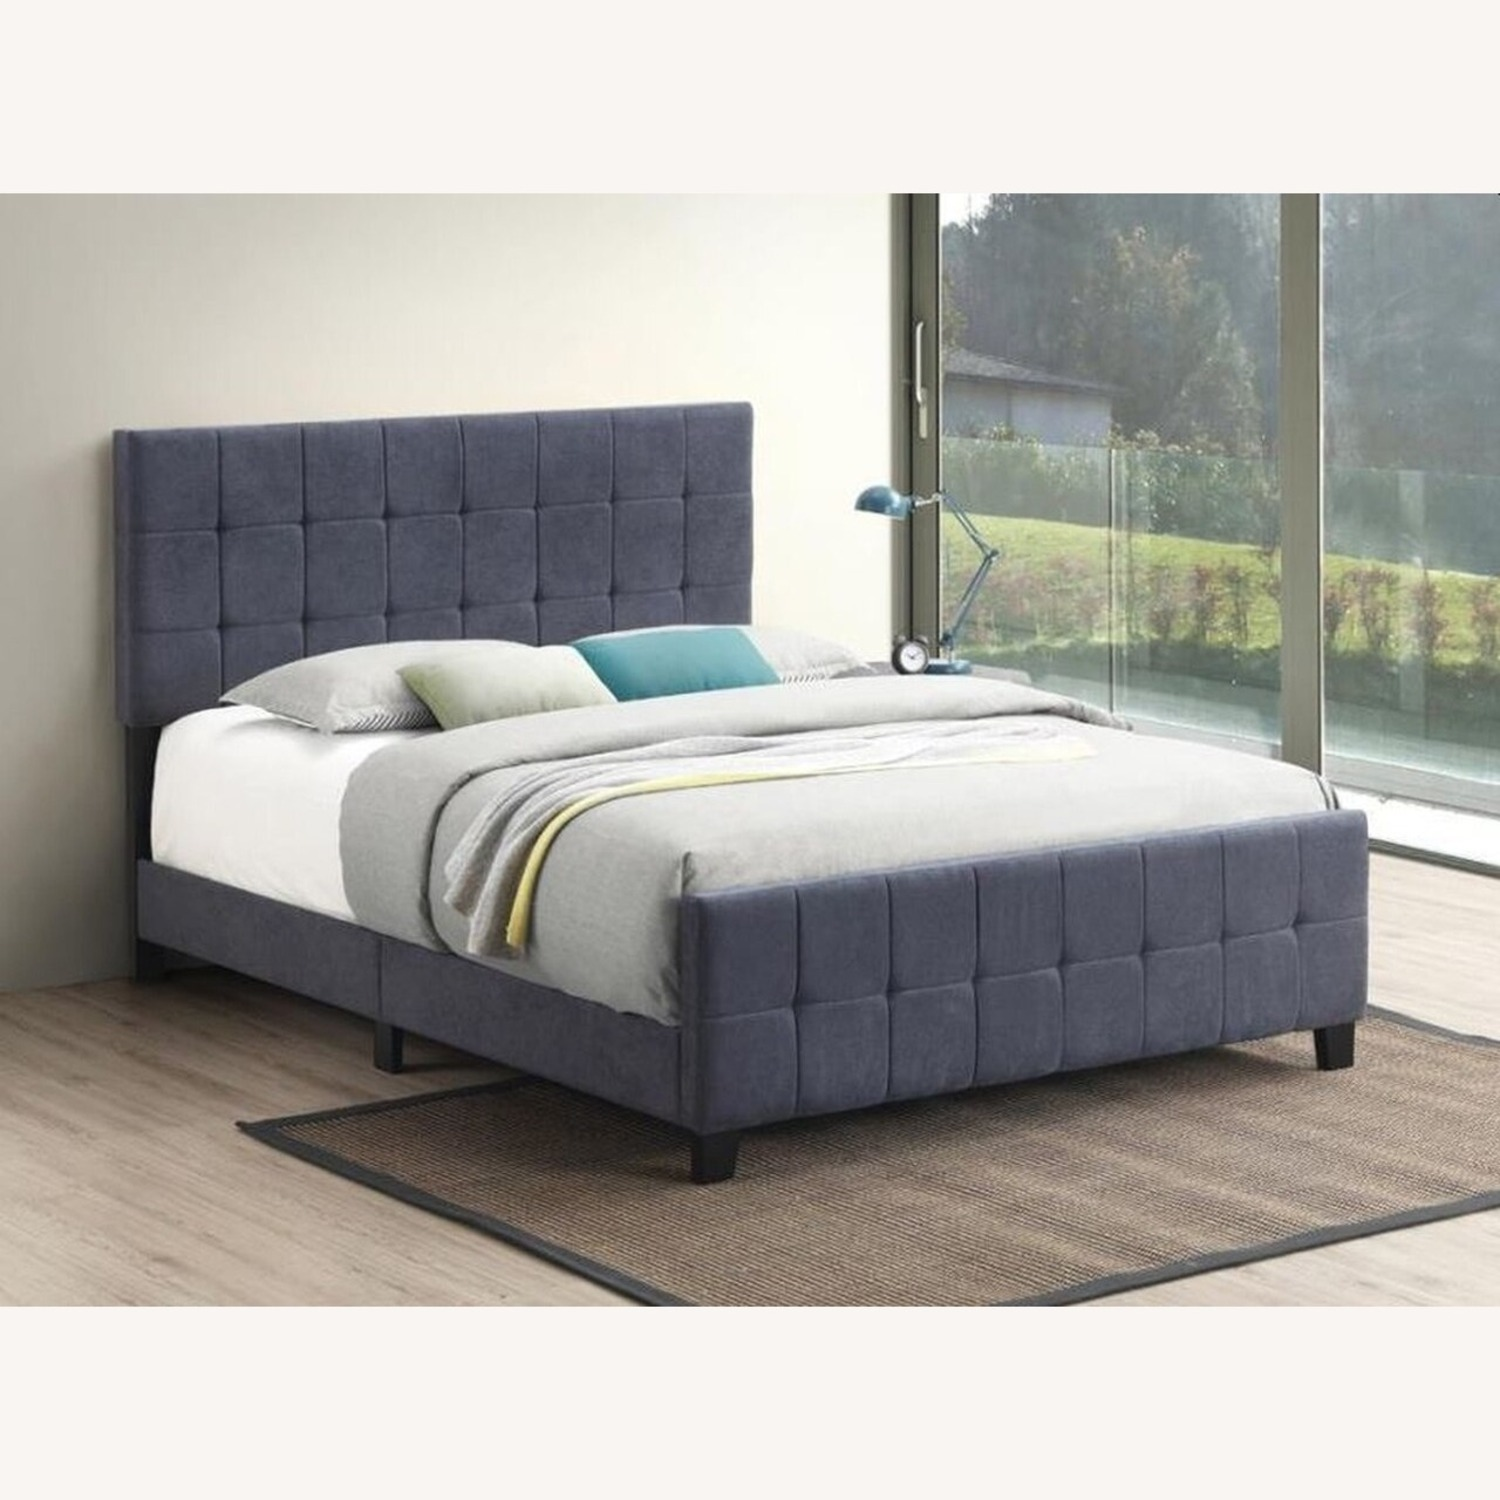 King Bed In A Pop Of Color Grey Fabric - image-2